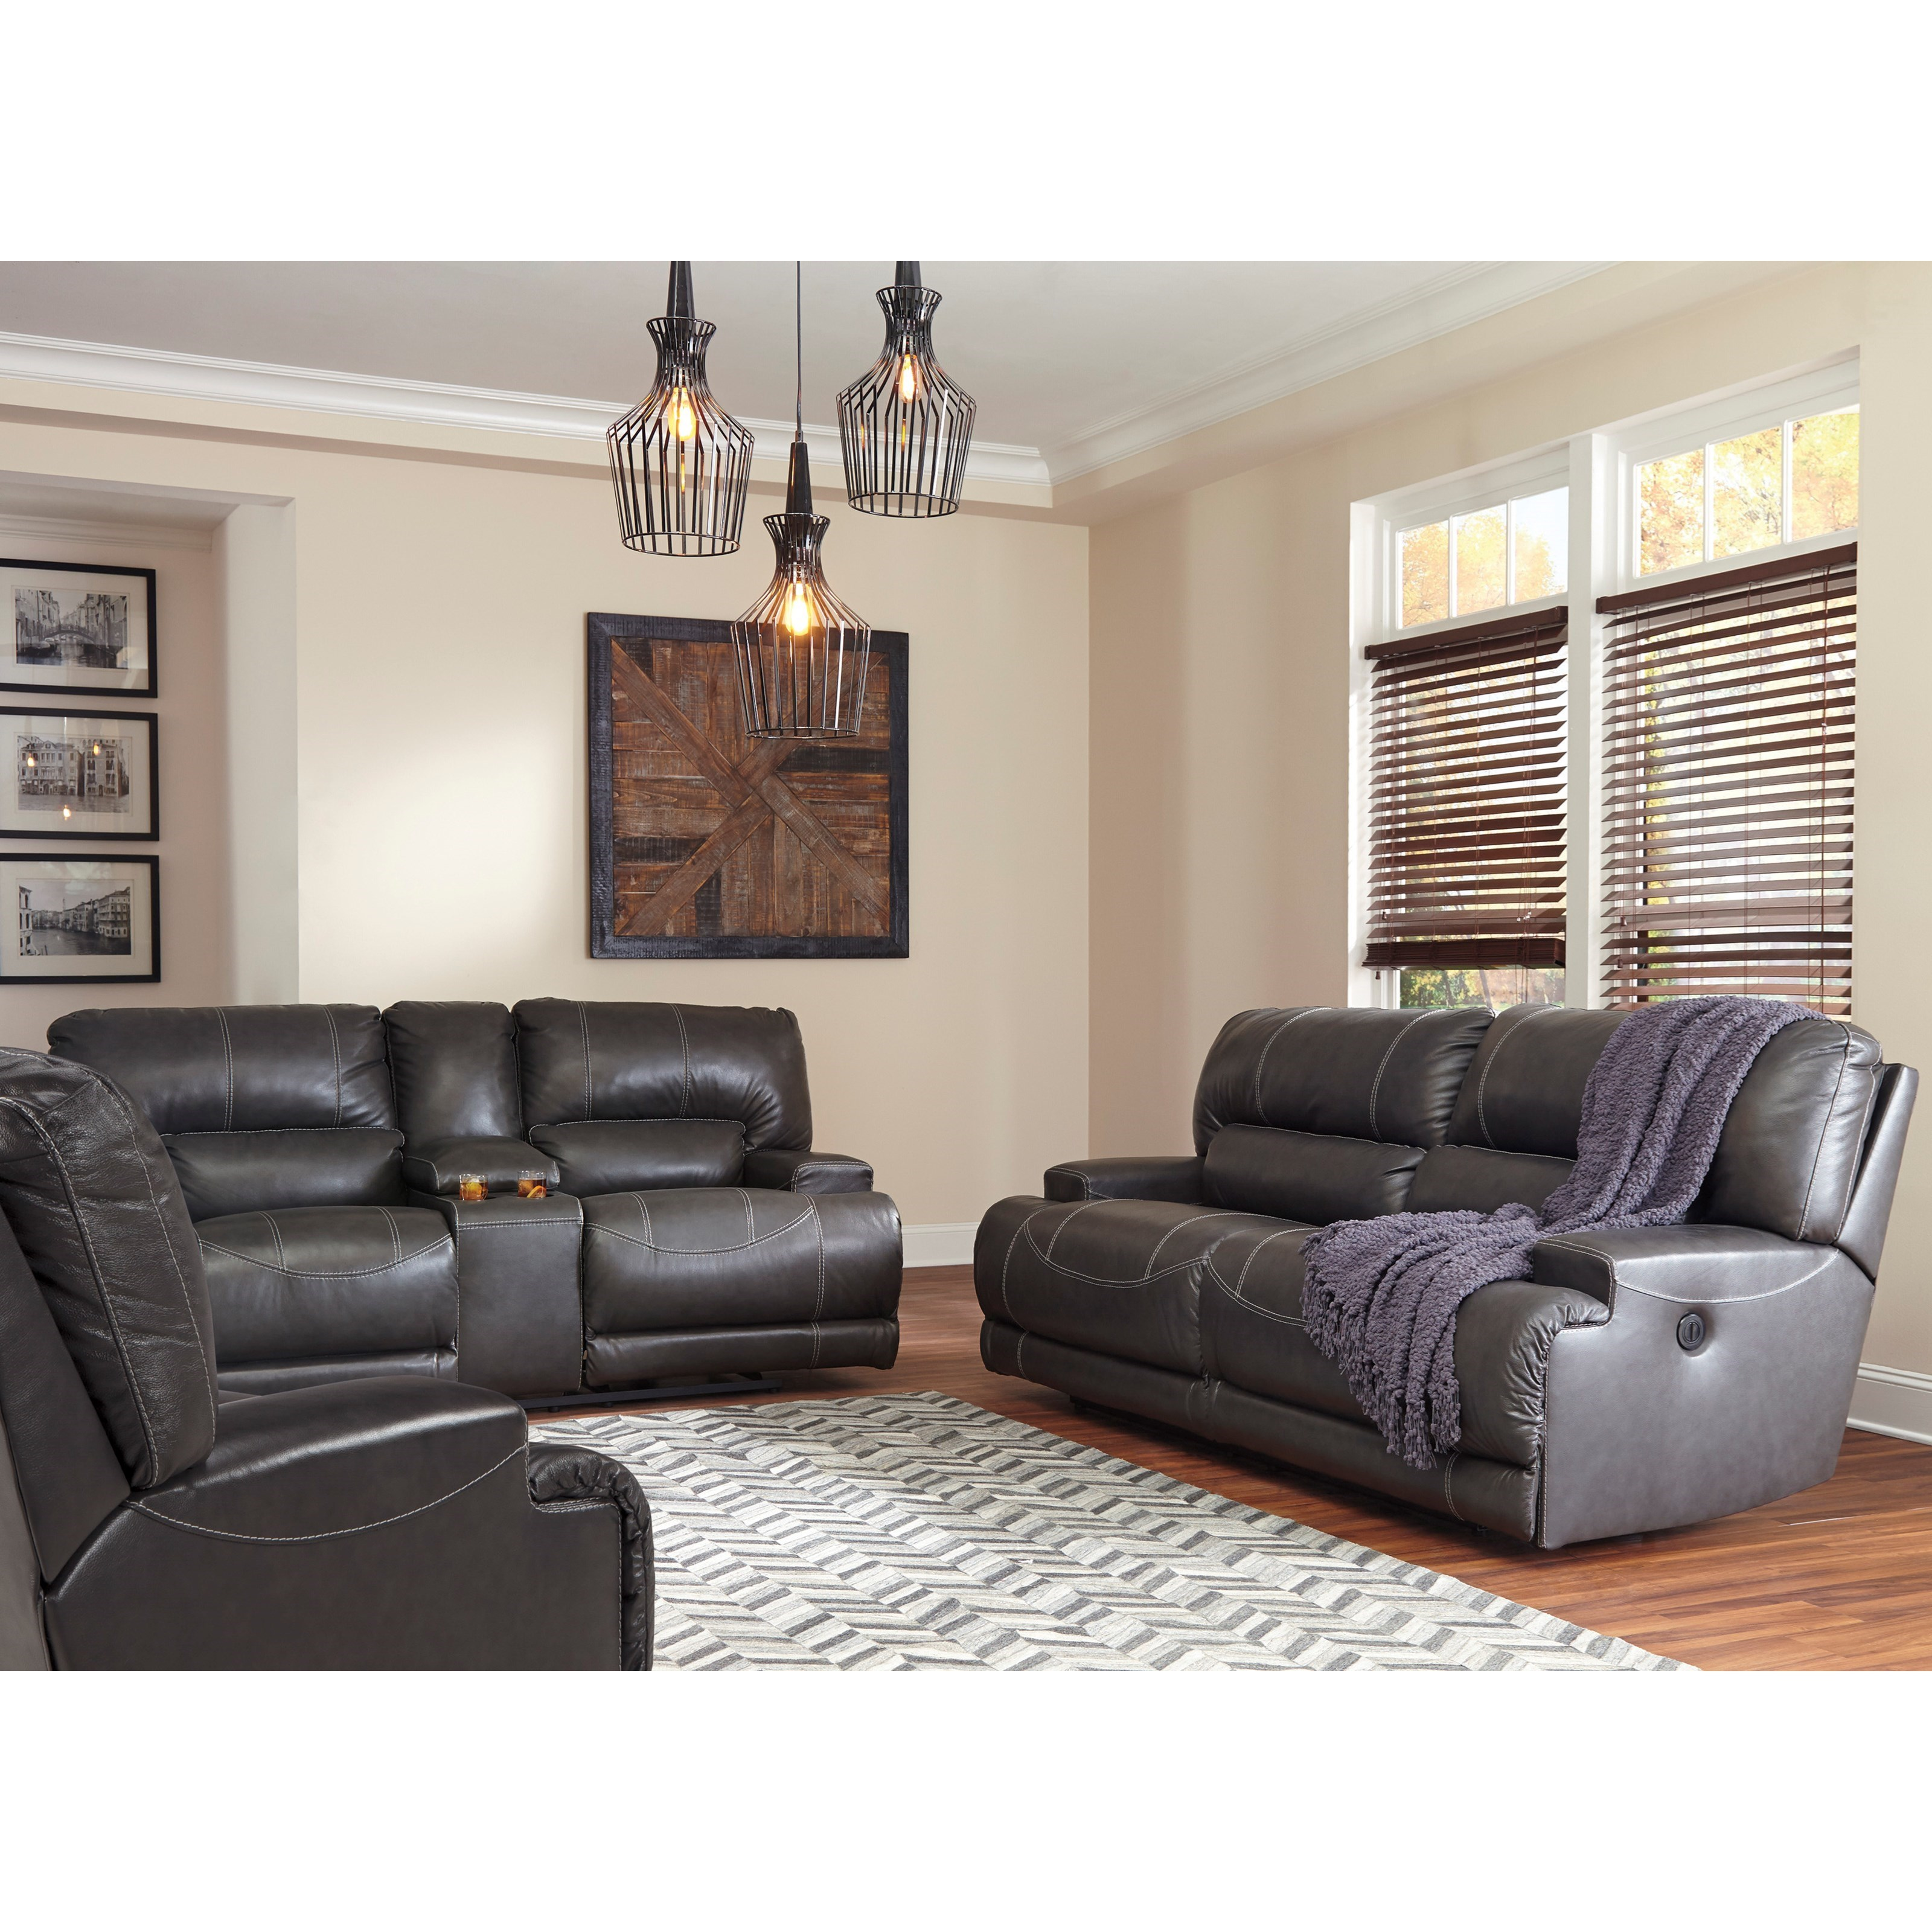 california sofa mfg house of fraser linea perry signature design by ashley mccaskill reclining living room